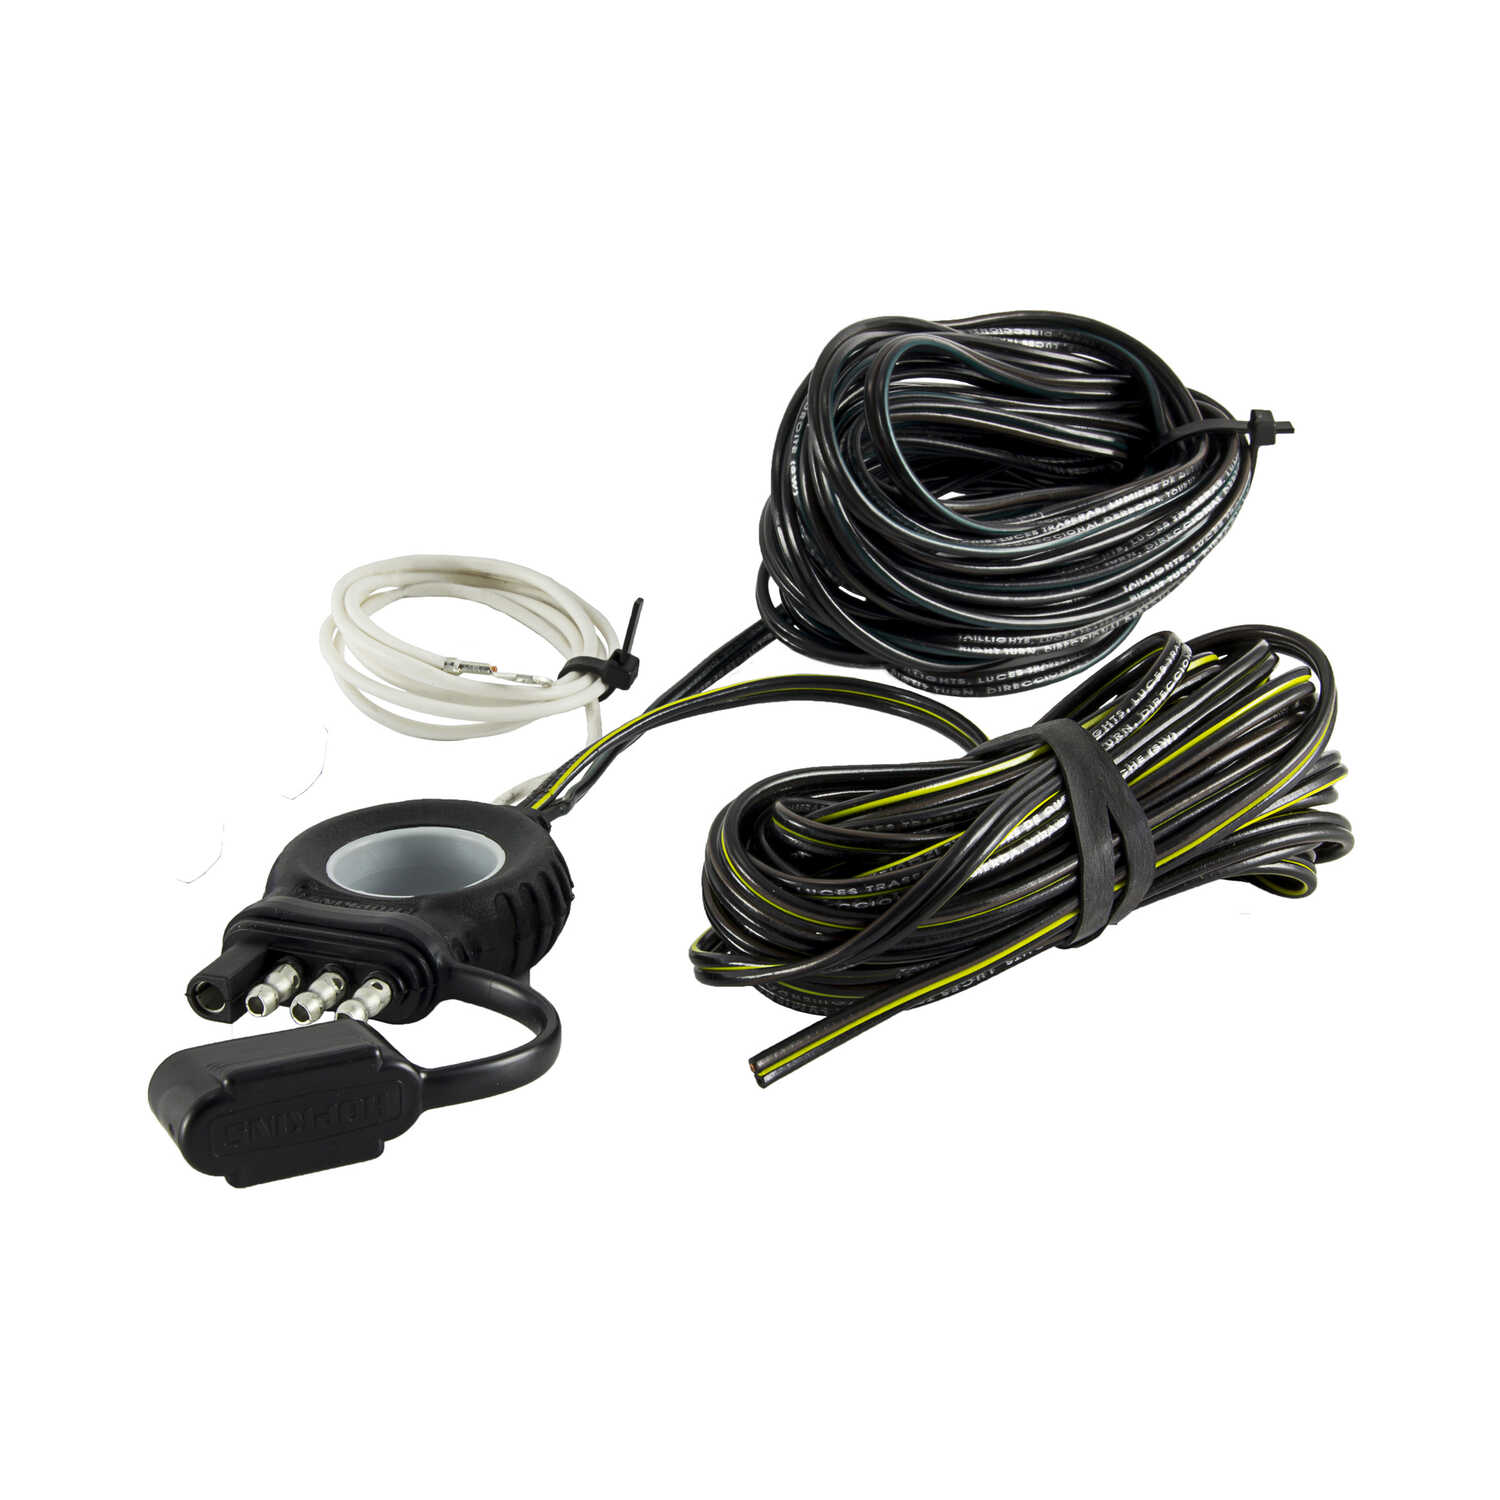 Hopkins  Endurance  240 in. Y-Harness Connector  4 Flat